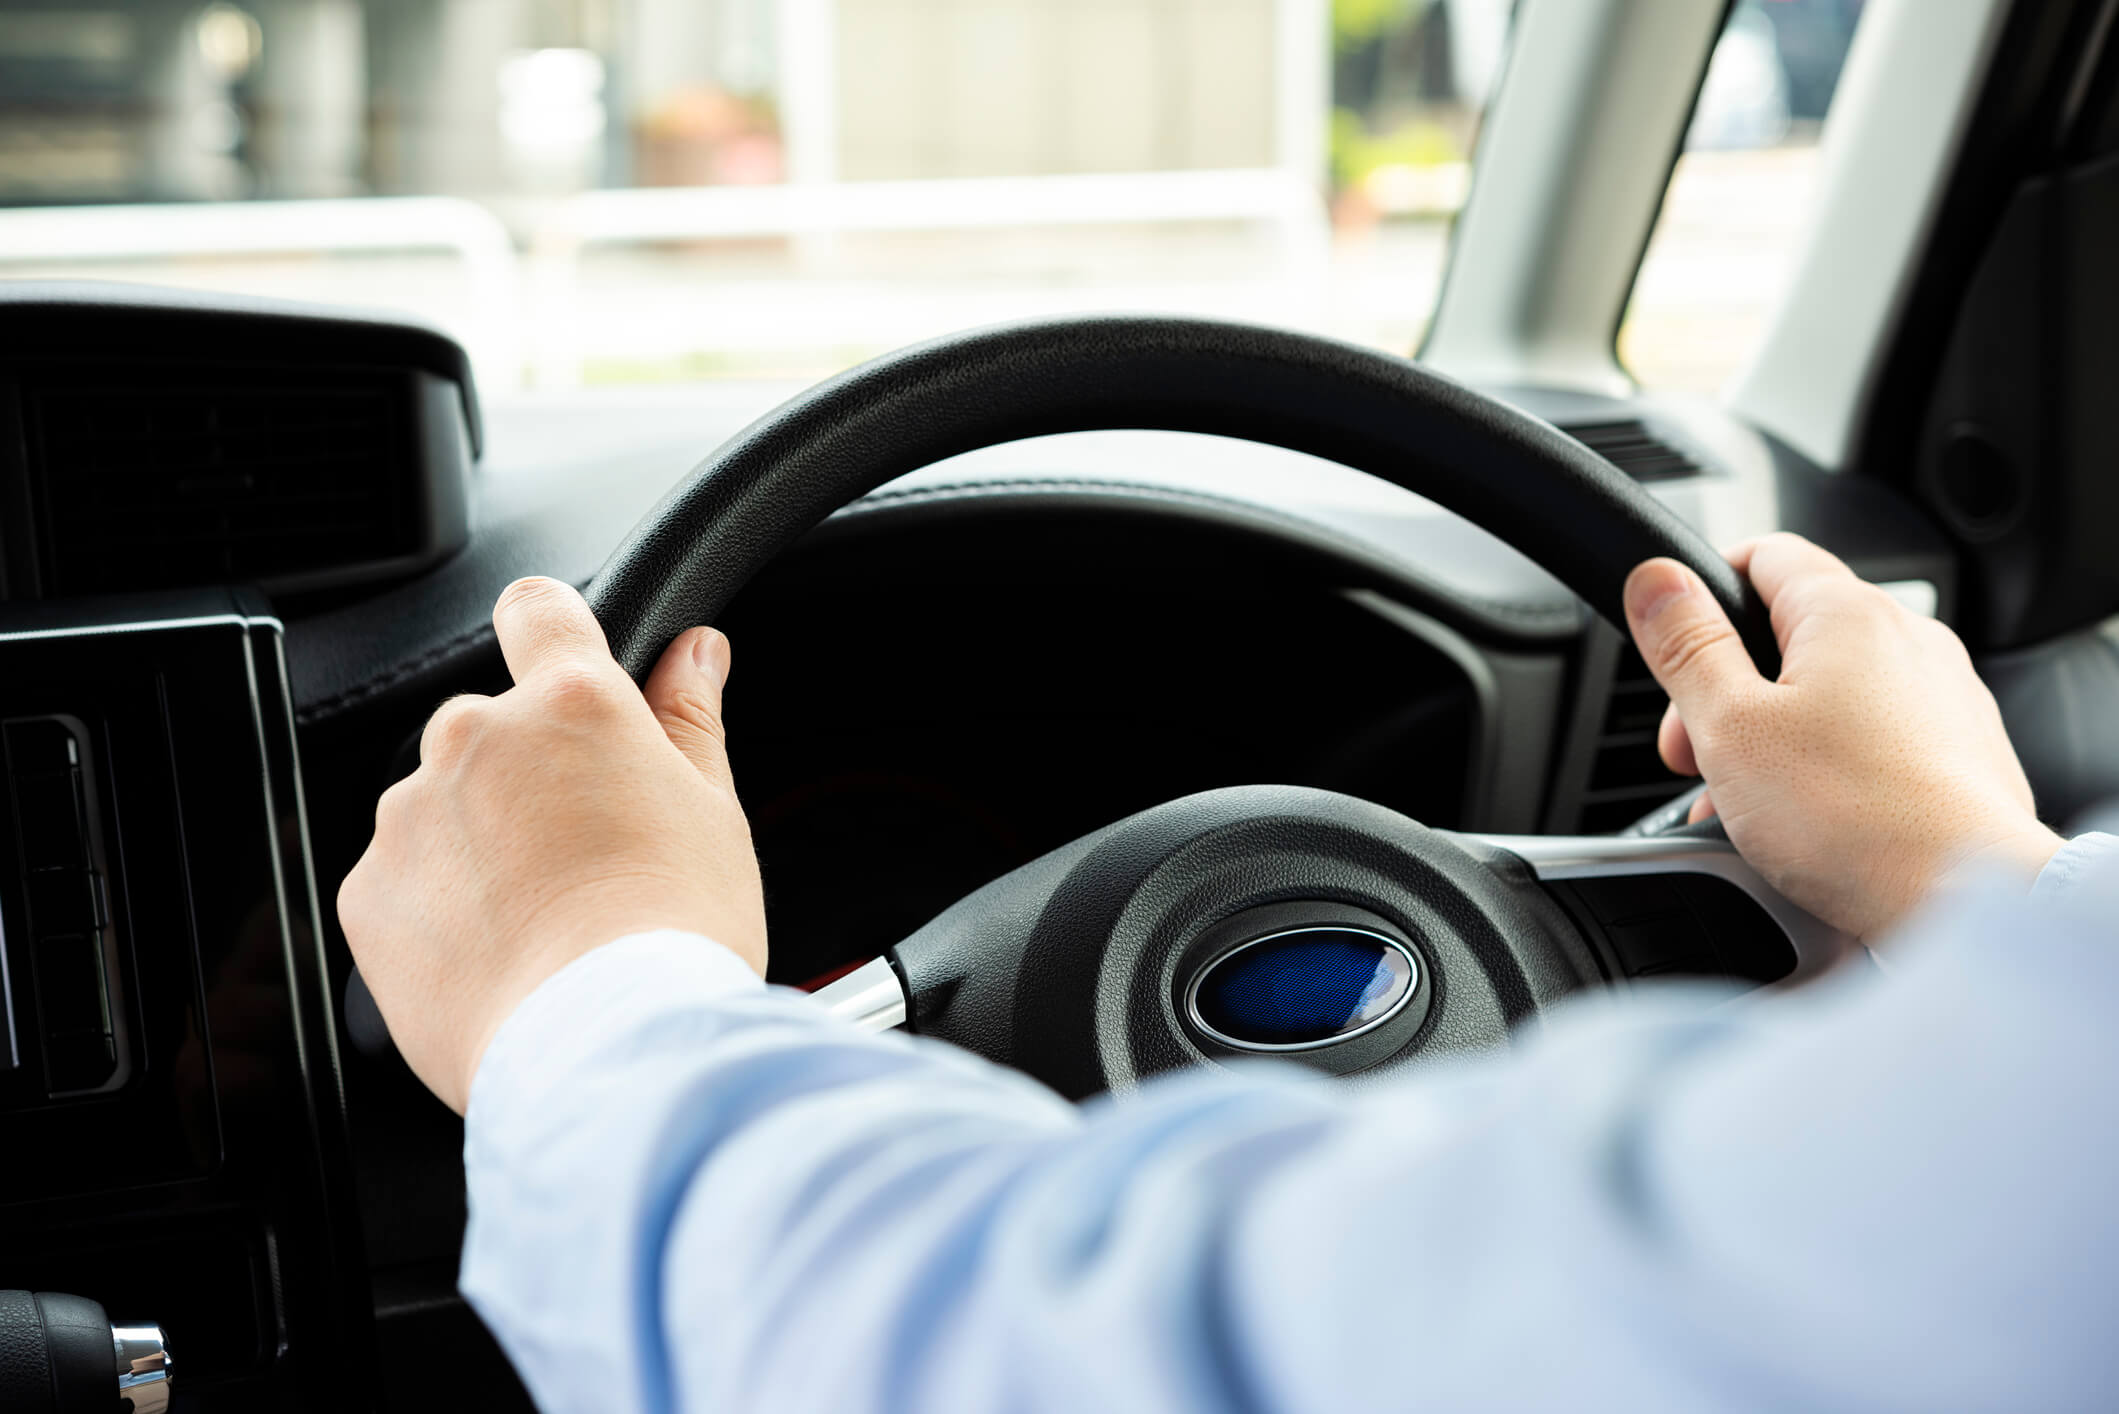 intercultural aspects of driving